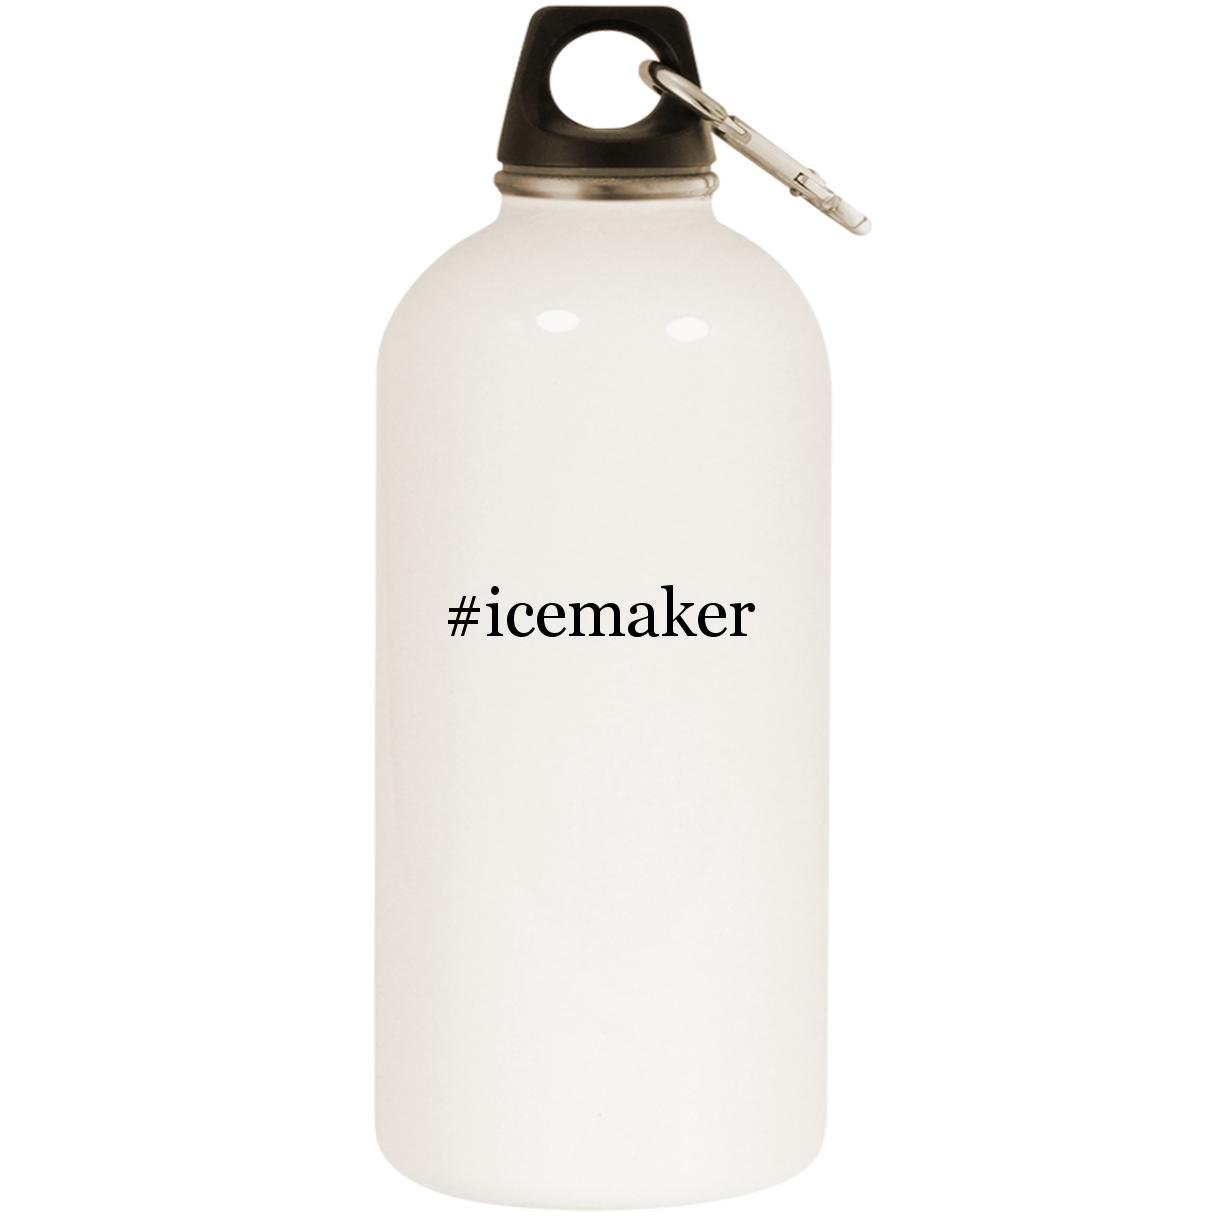 Molandra Products #Icemaker - White Hashtag 20oz Stainless Steel Water Bottle with Carabiner